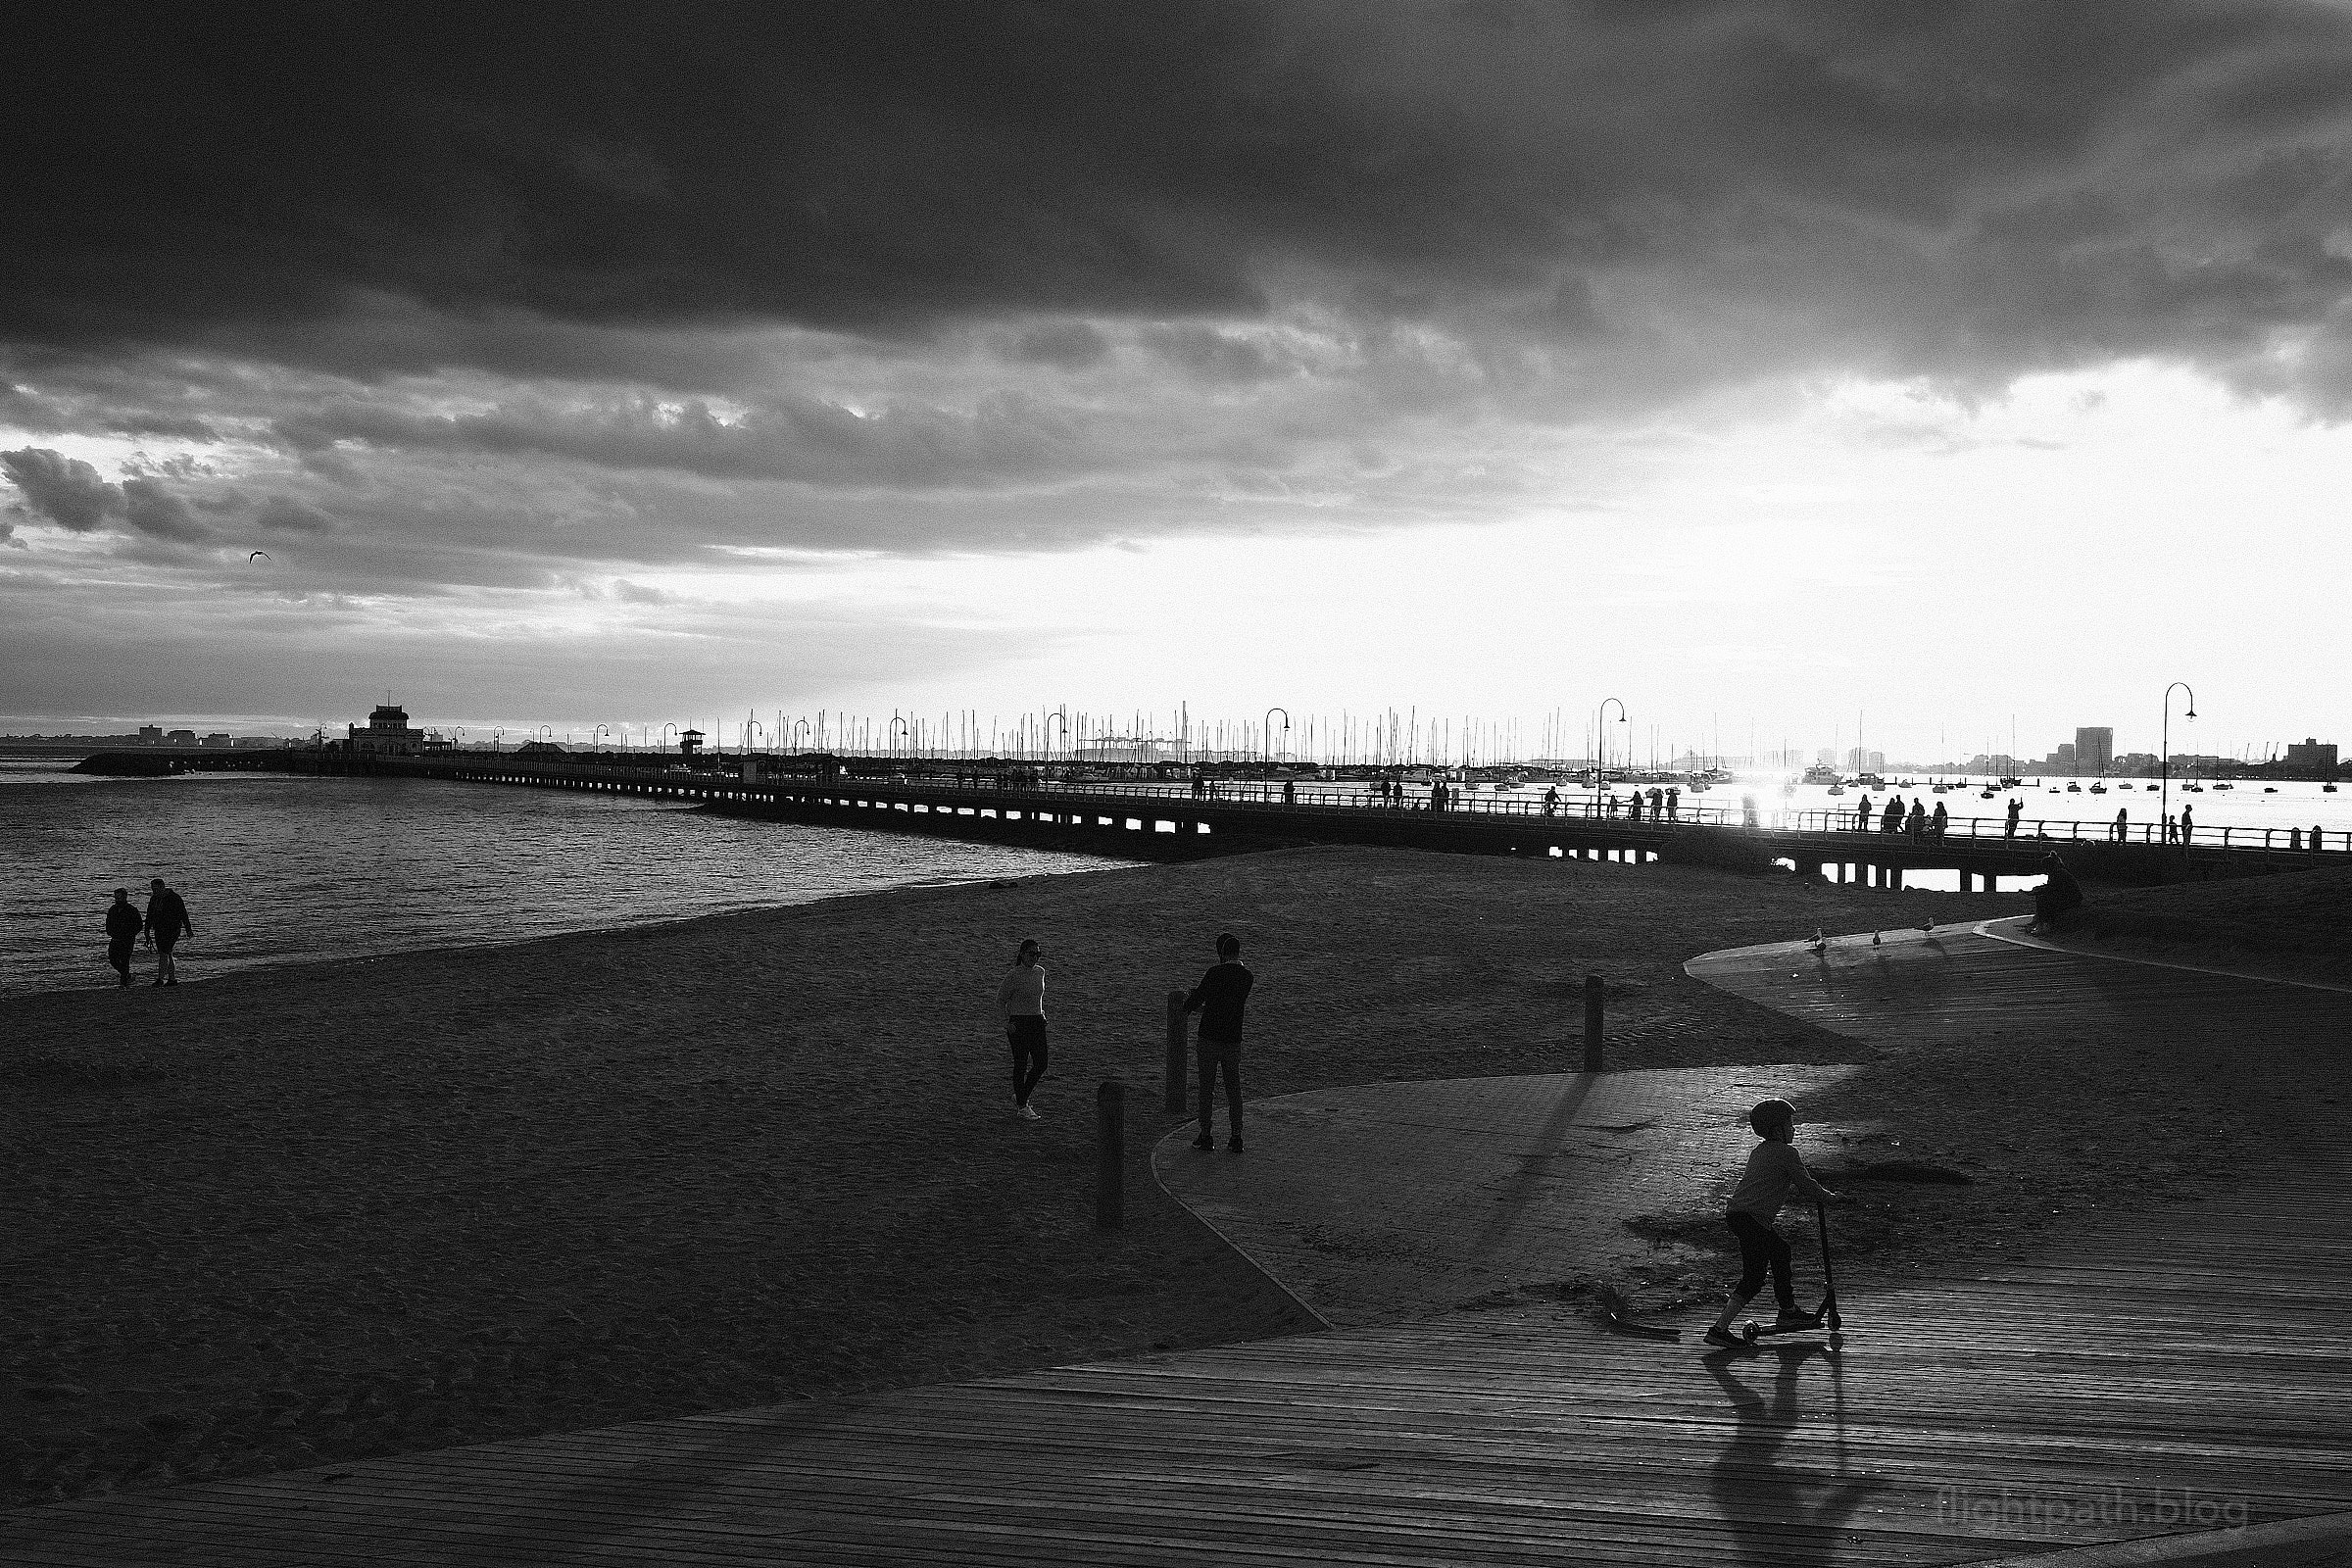 A view of St Kilda Pier with the sun low on the horizon. Silhouettes of various people are shown on the beach and pier.